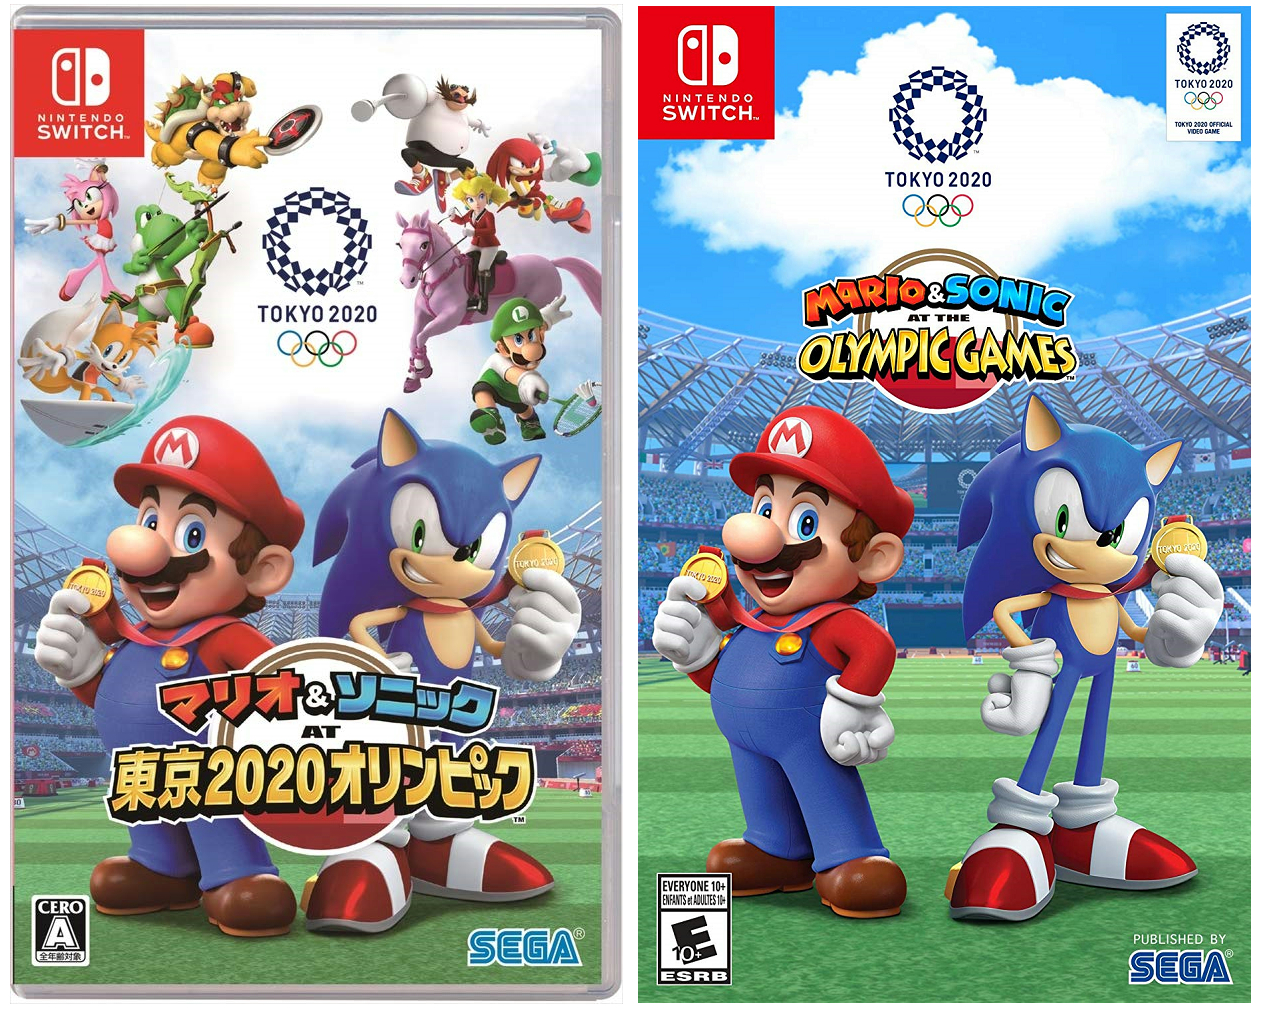 Nintendo Switch Upcoming Games 2020.Mario Sonic At The Olympic Games Tokyo 2020 Boxart Looks